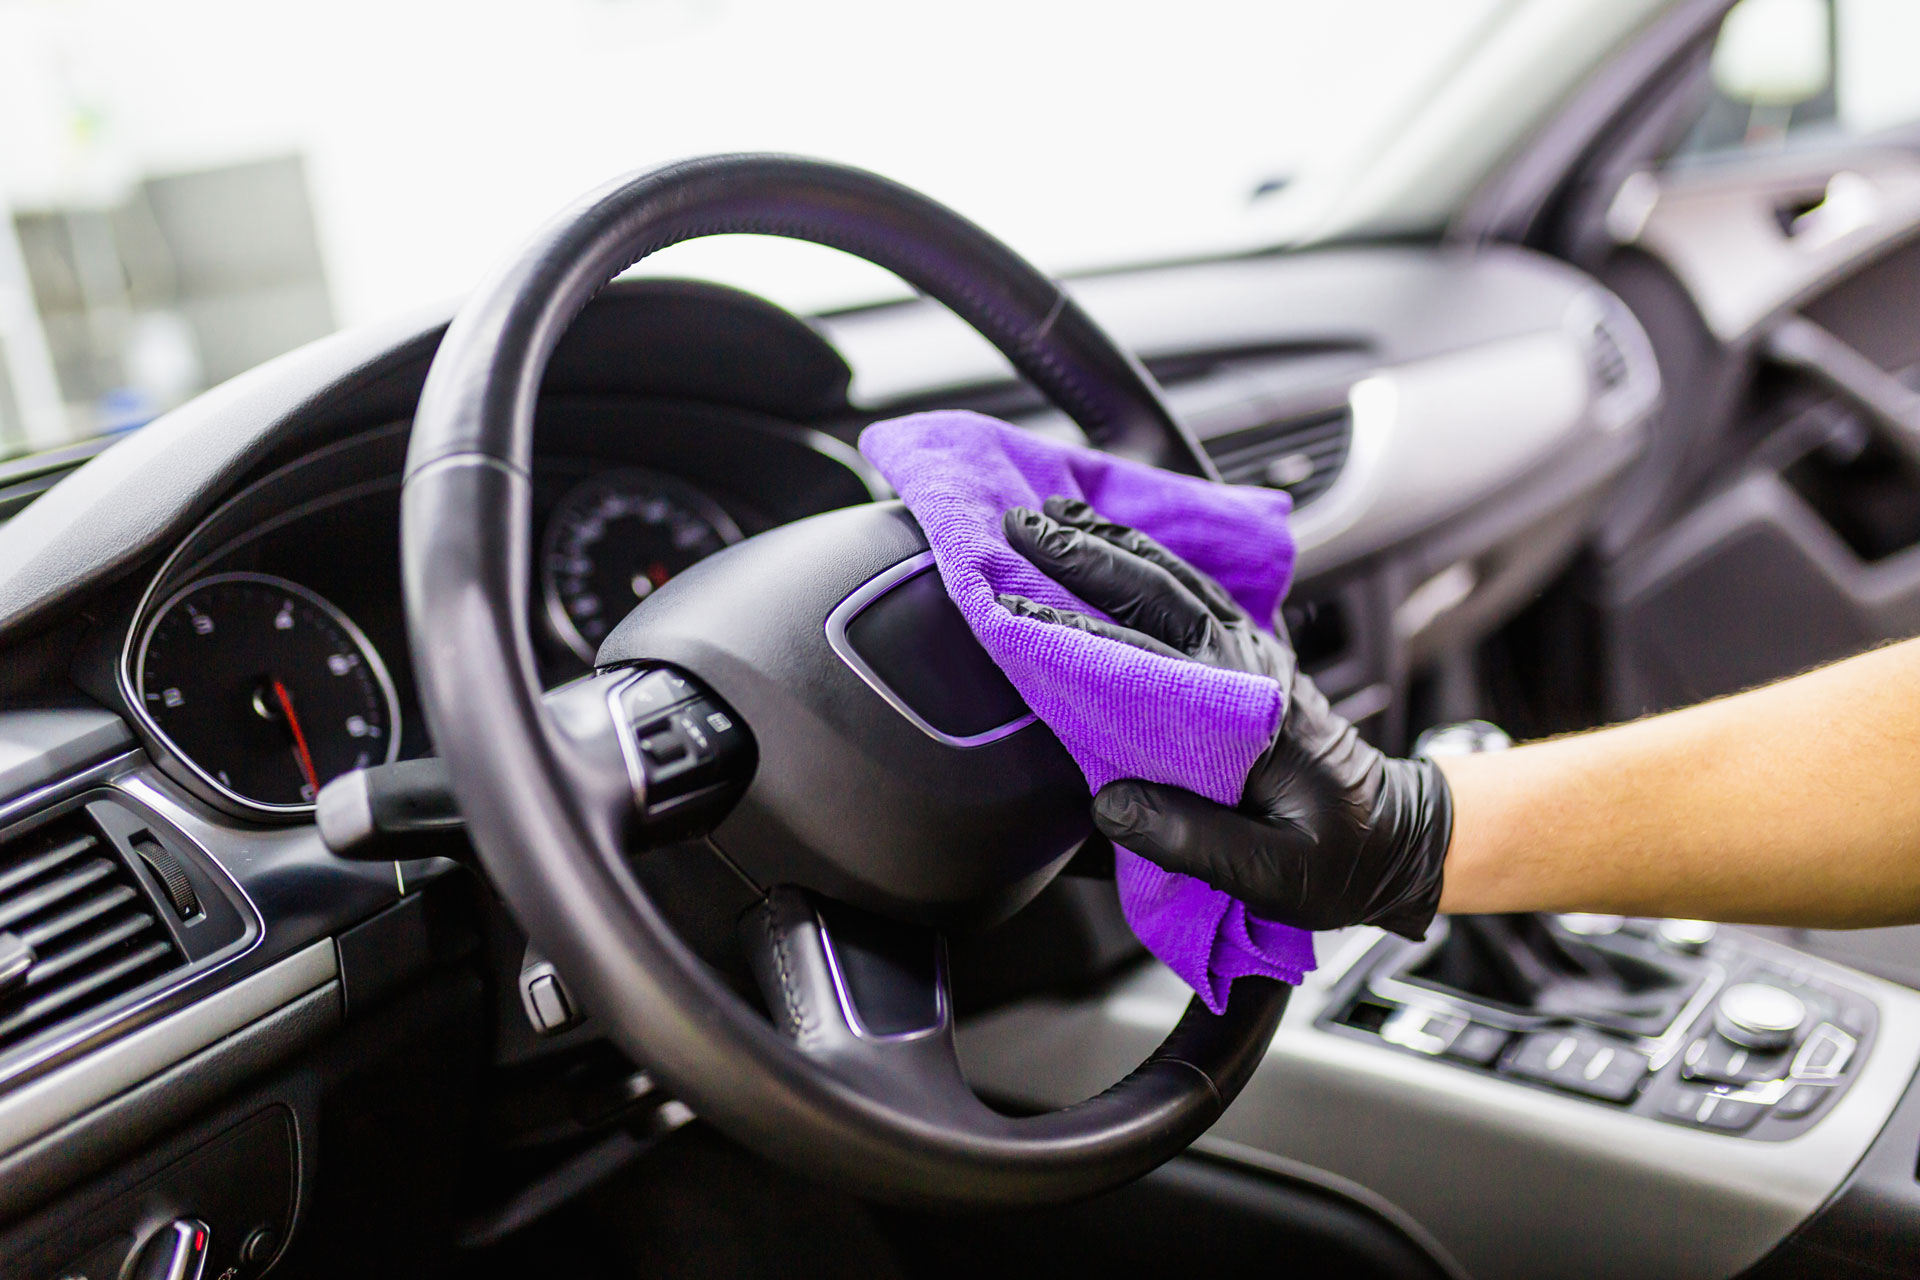 How To Properly Disinfect Your Vehicle Without Damaging The Interior